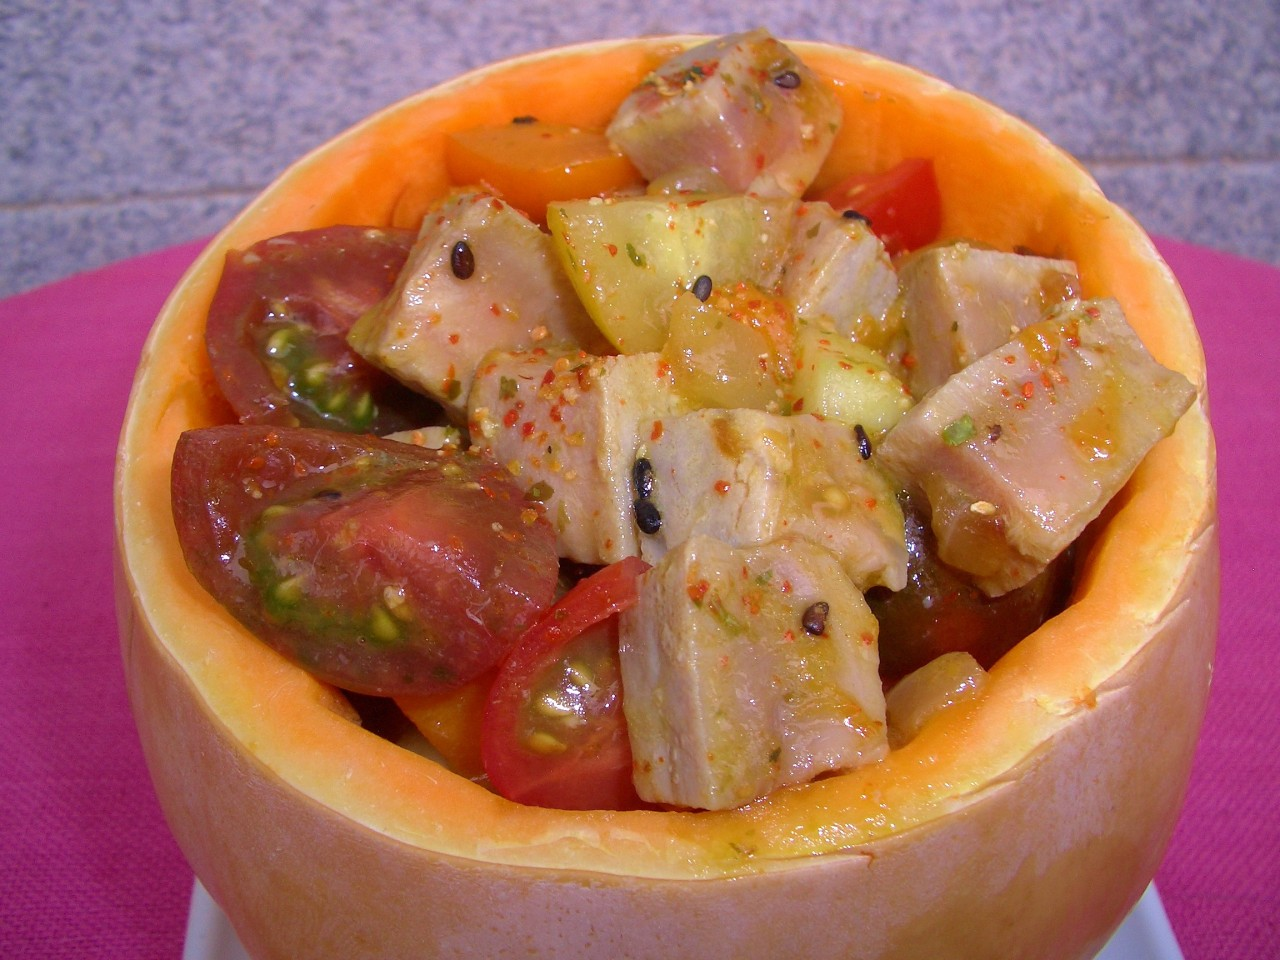 Ensalada de Atun Rojo y Calabaza – Red Tuna and Pumpkin Salad